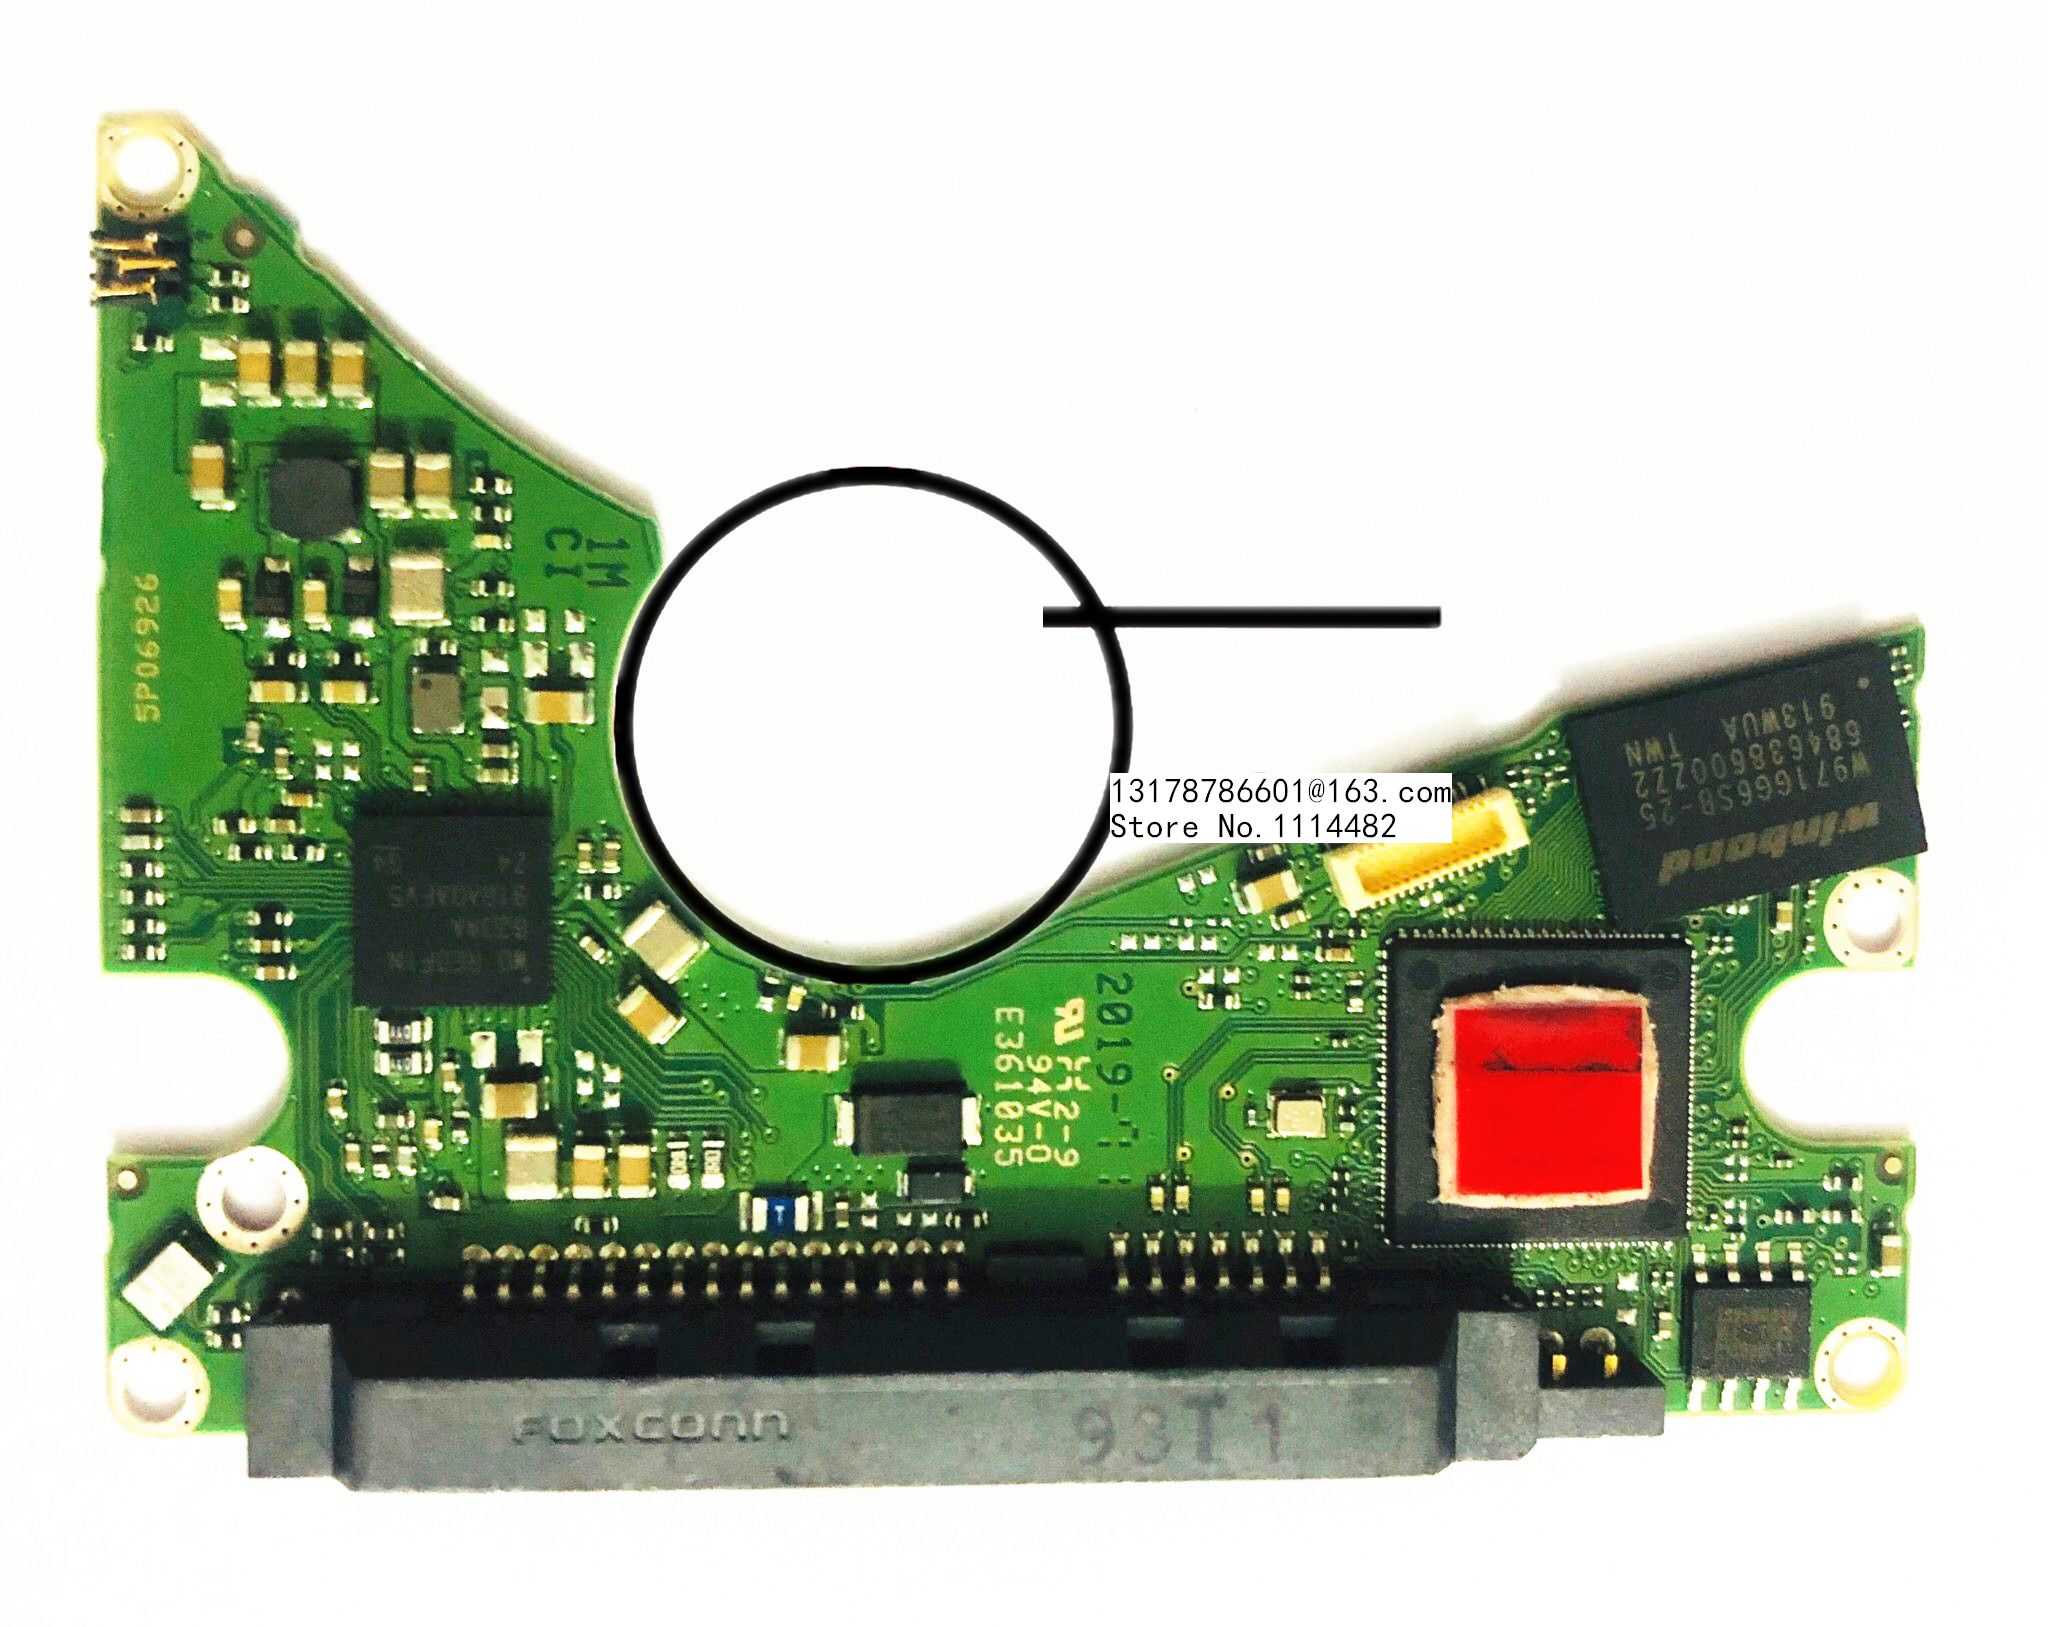 2060 800022 002 REV P1  100% Original Hard Disk Board Mobile Good Test PCB Circuit Board  2060 800022 002 REV P1